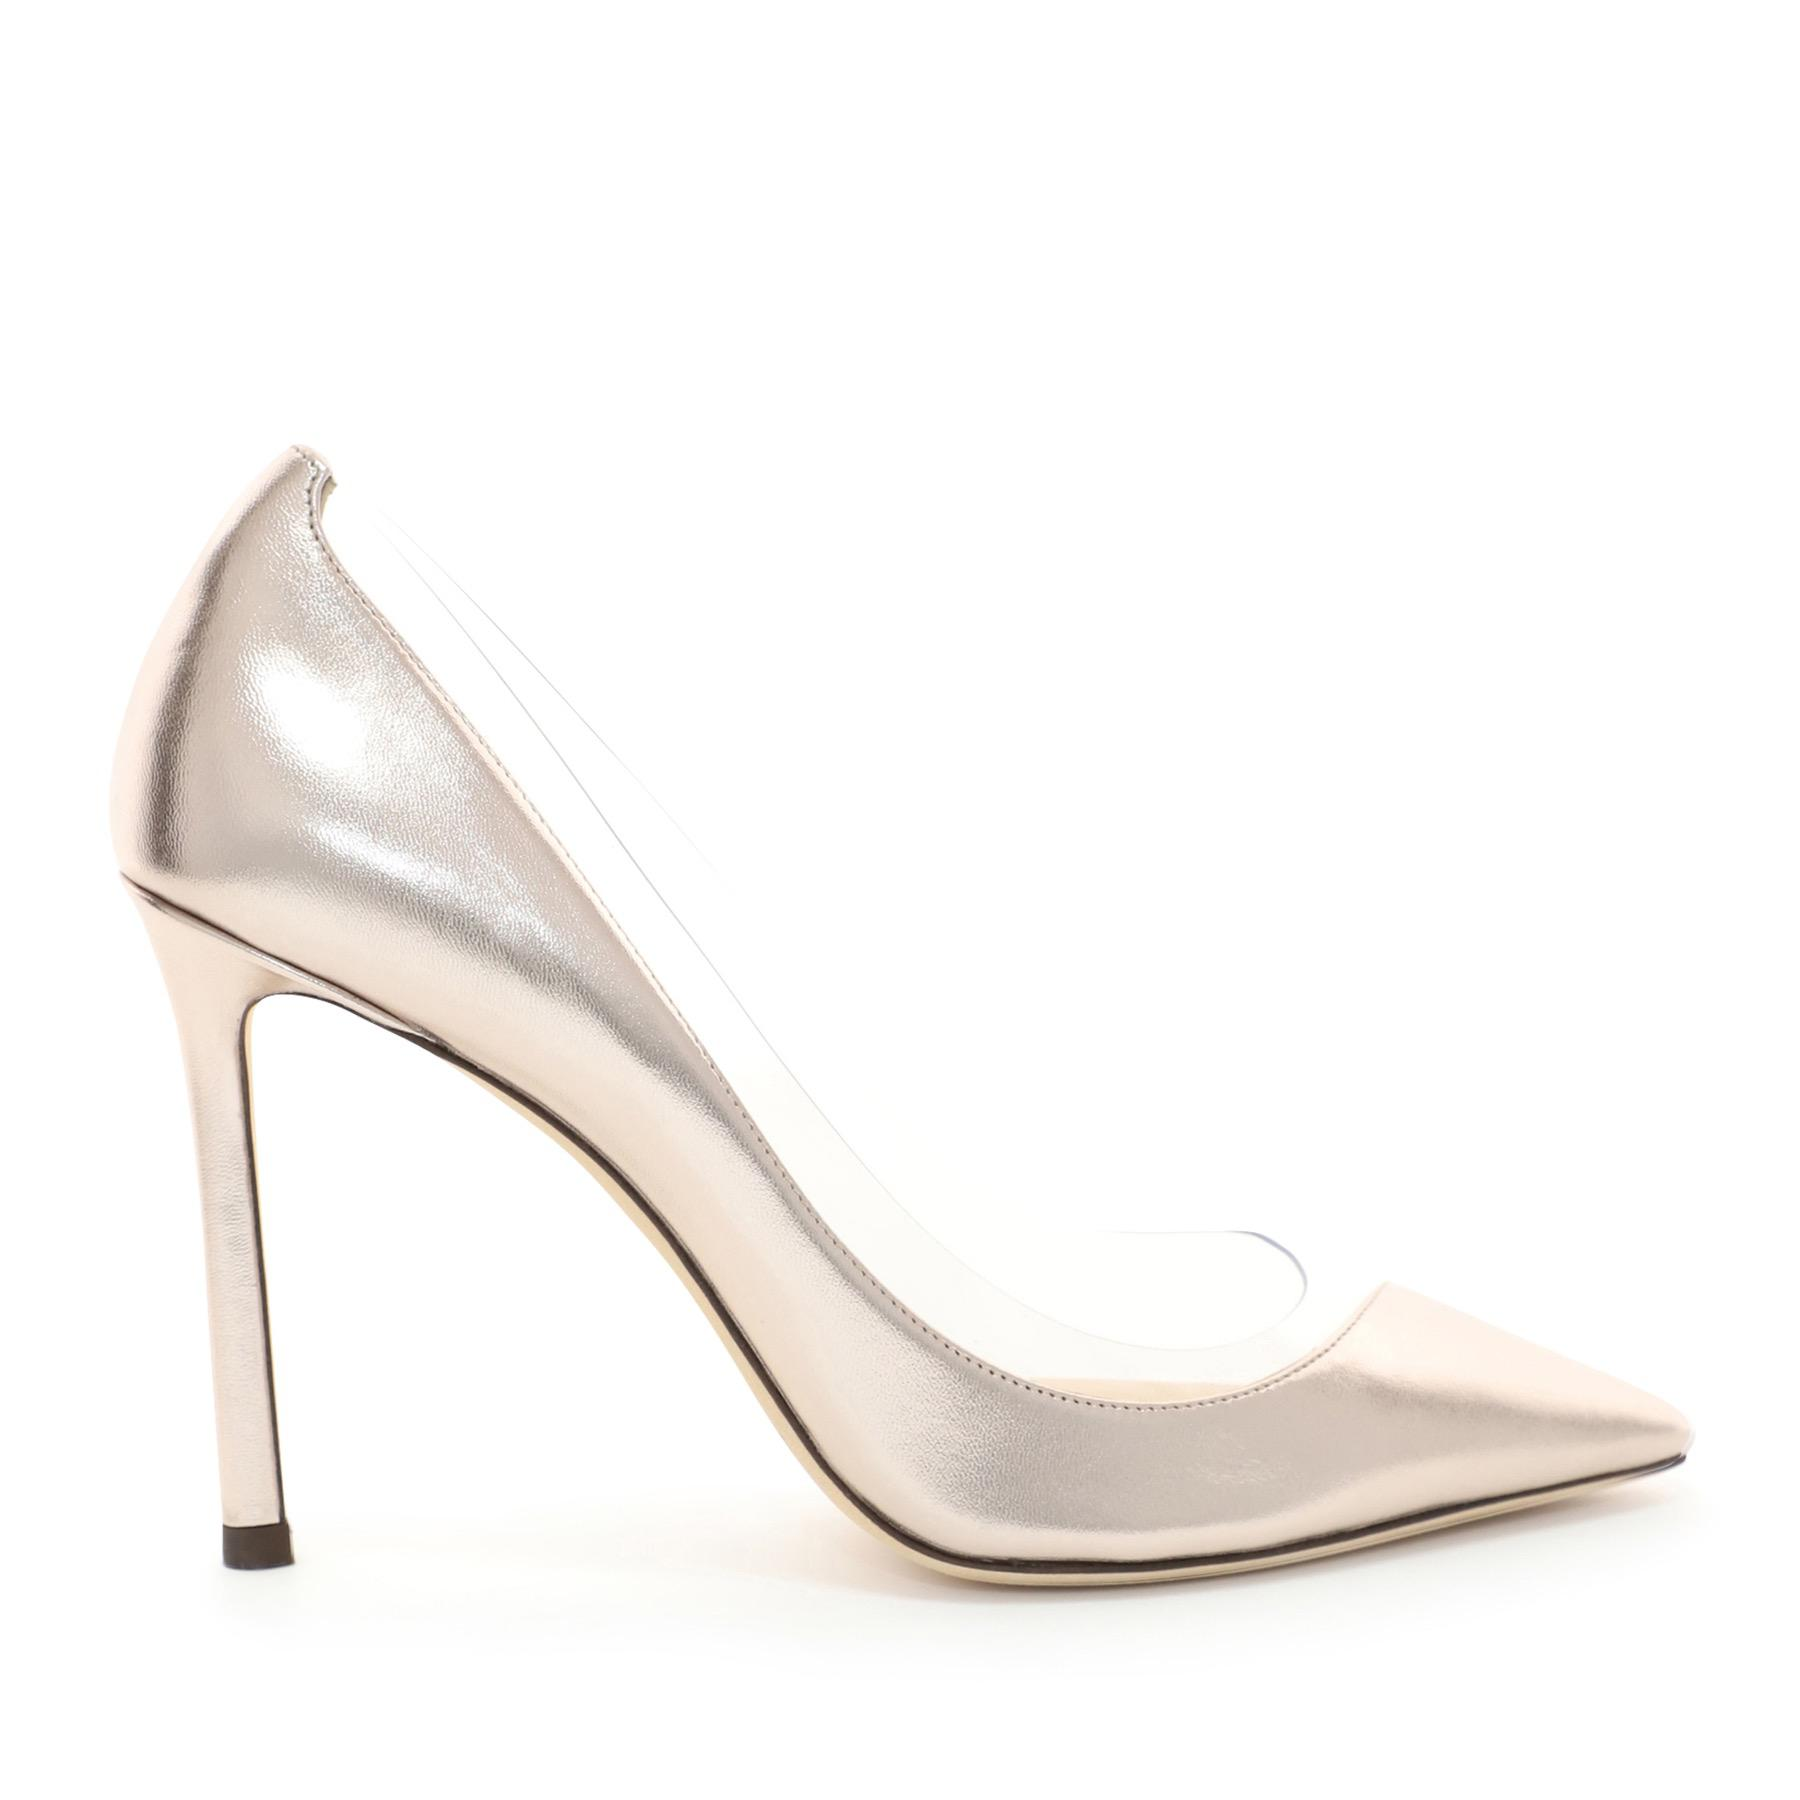 5c82c2d3c13 Jimmy Choo. Women s Romy 100 Platinum And Clear Pointy Toe Pumps In  Metallic Nappa And Plexi